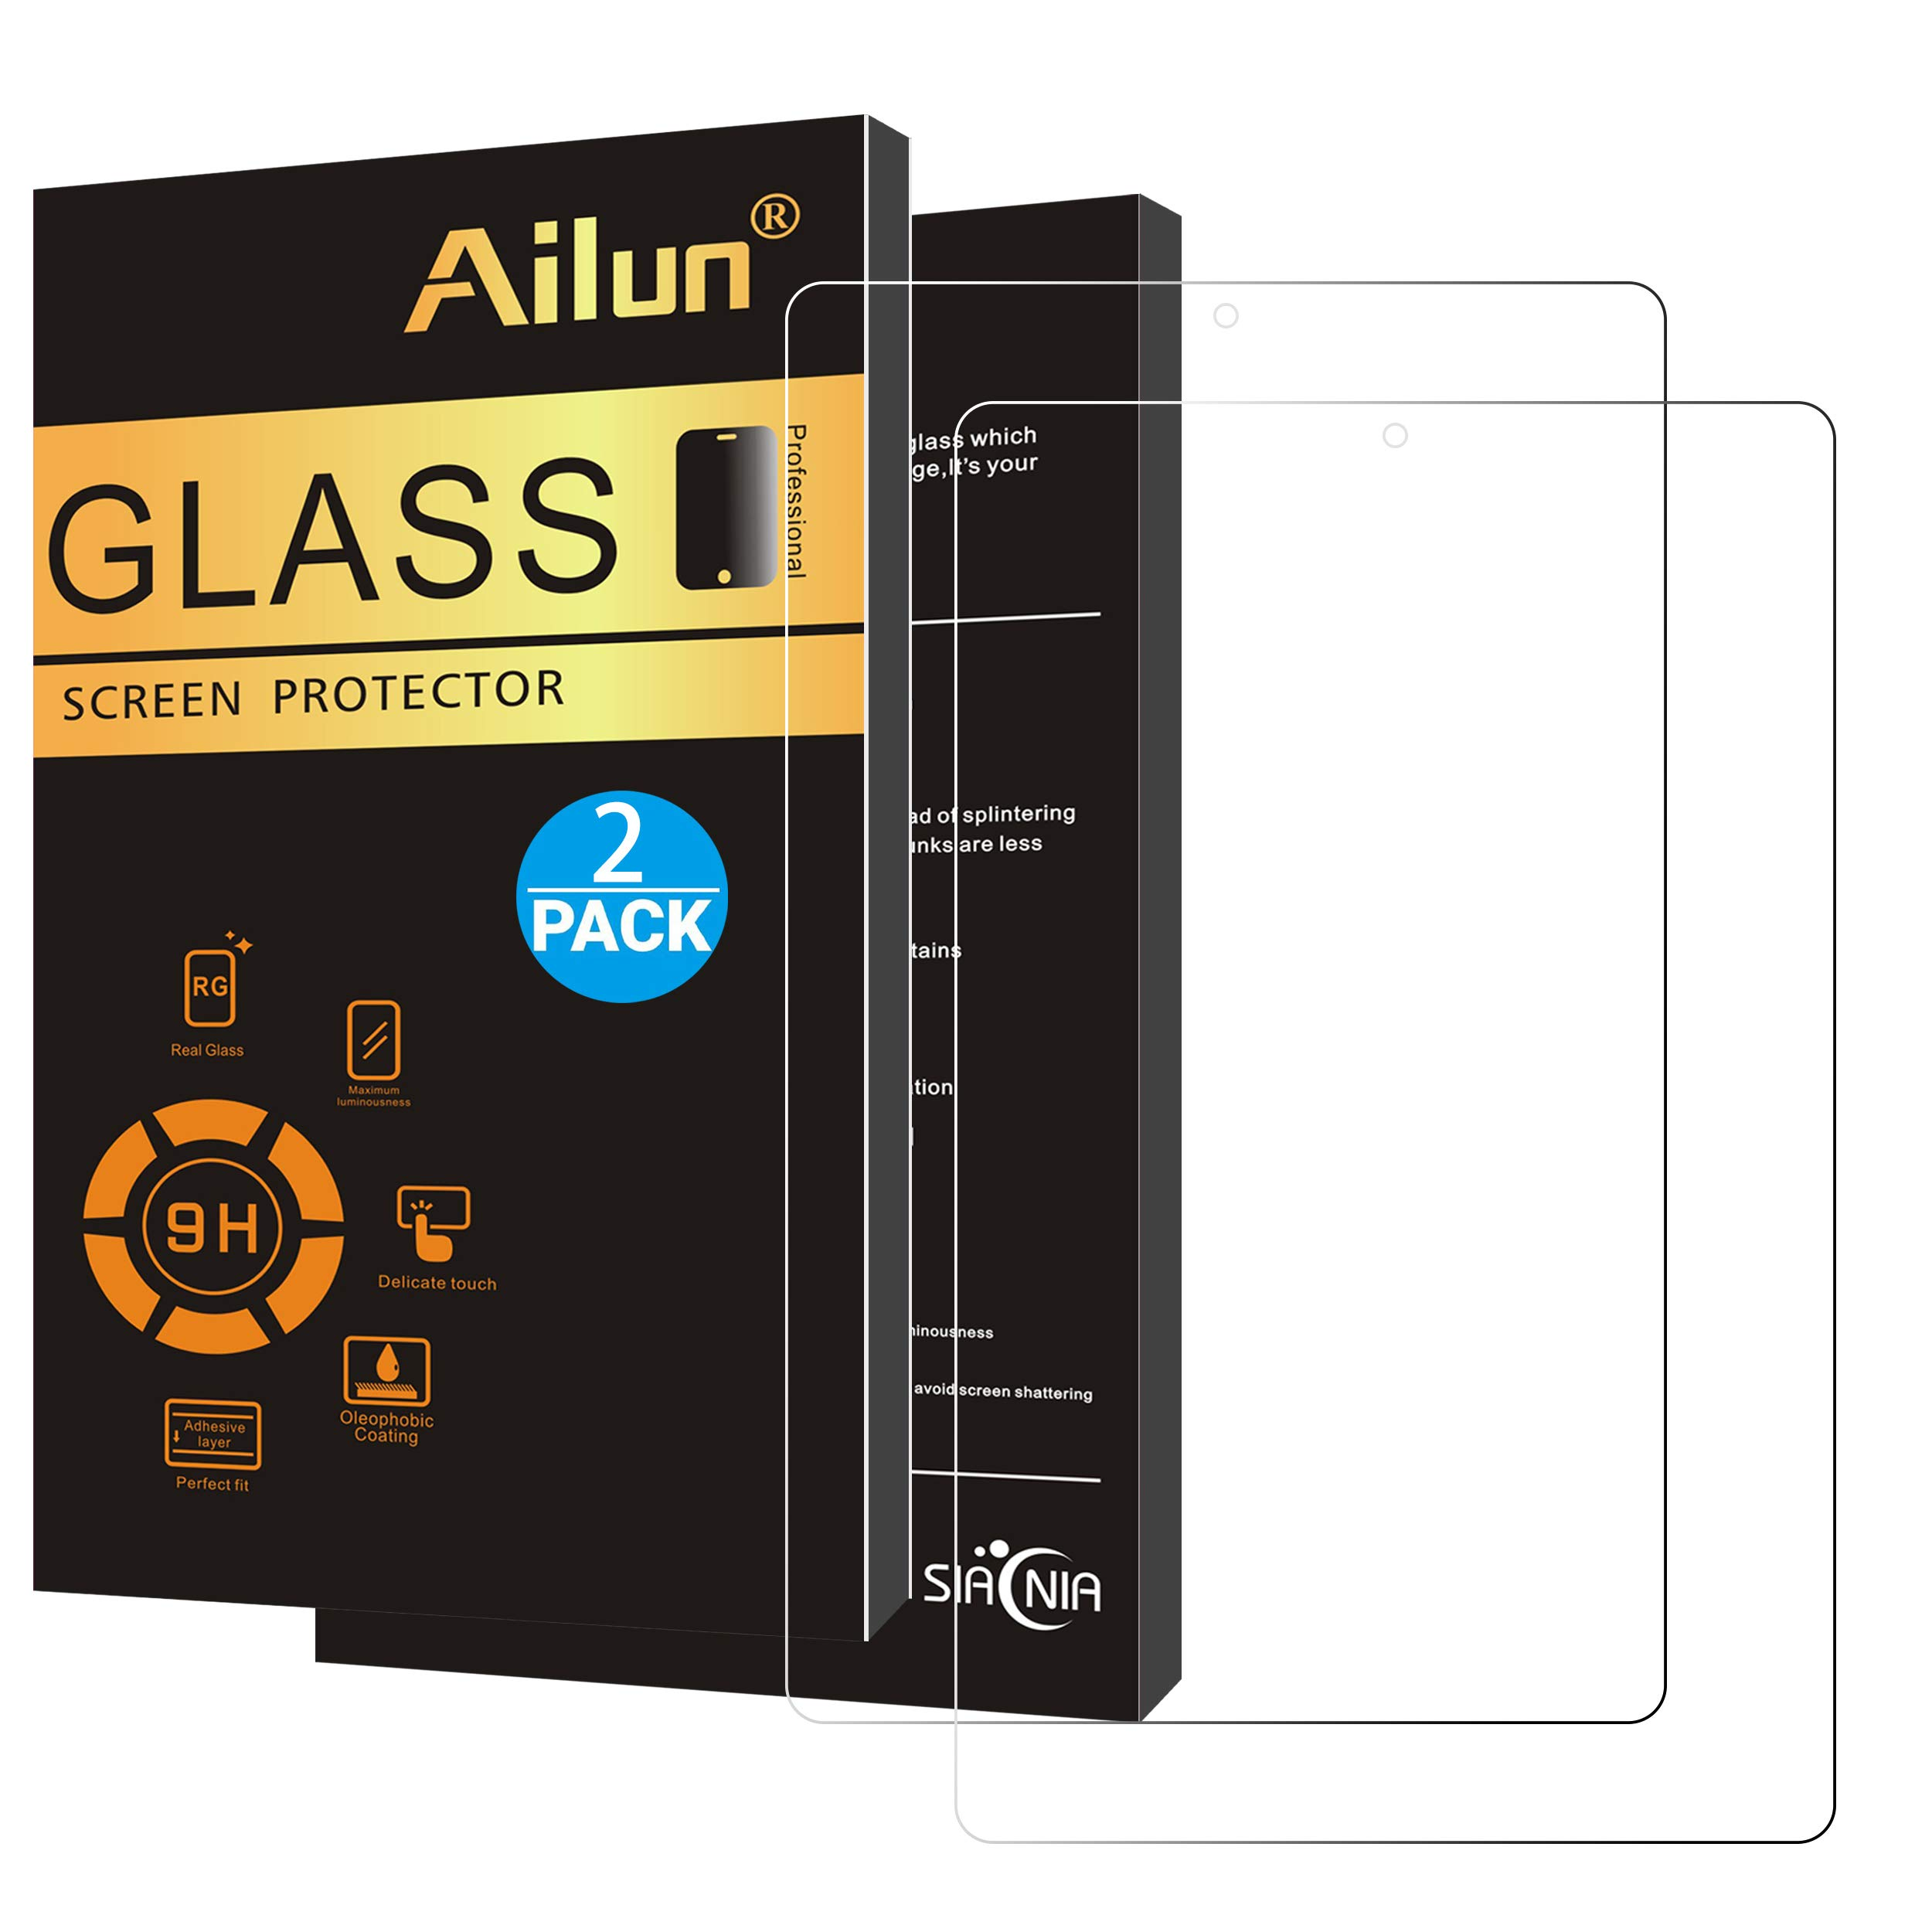 Ailun Screen Protector Compatible with Fire HD 10 Fire HD 10 Kids Edition 2Pack 2.5D Edge Tempered Glass 9H Hardness Ultra Clear Anti Scratch Case Friendly